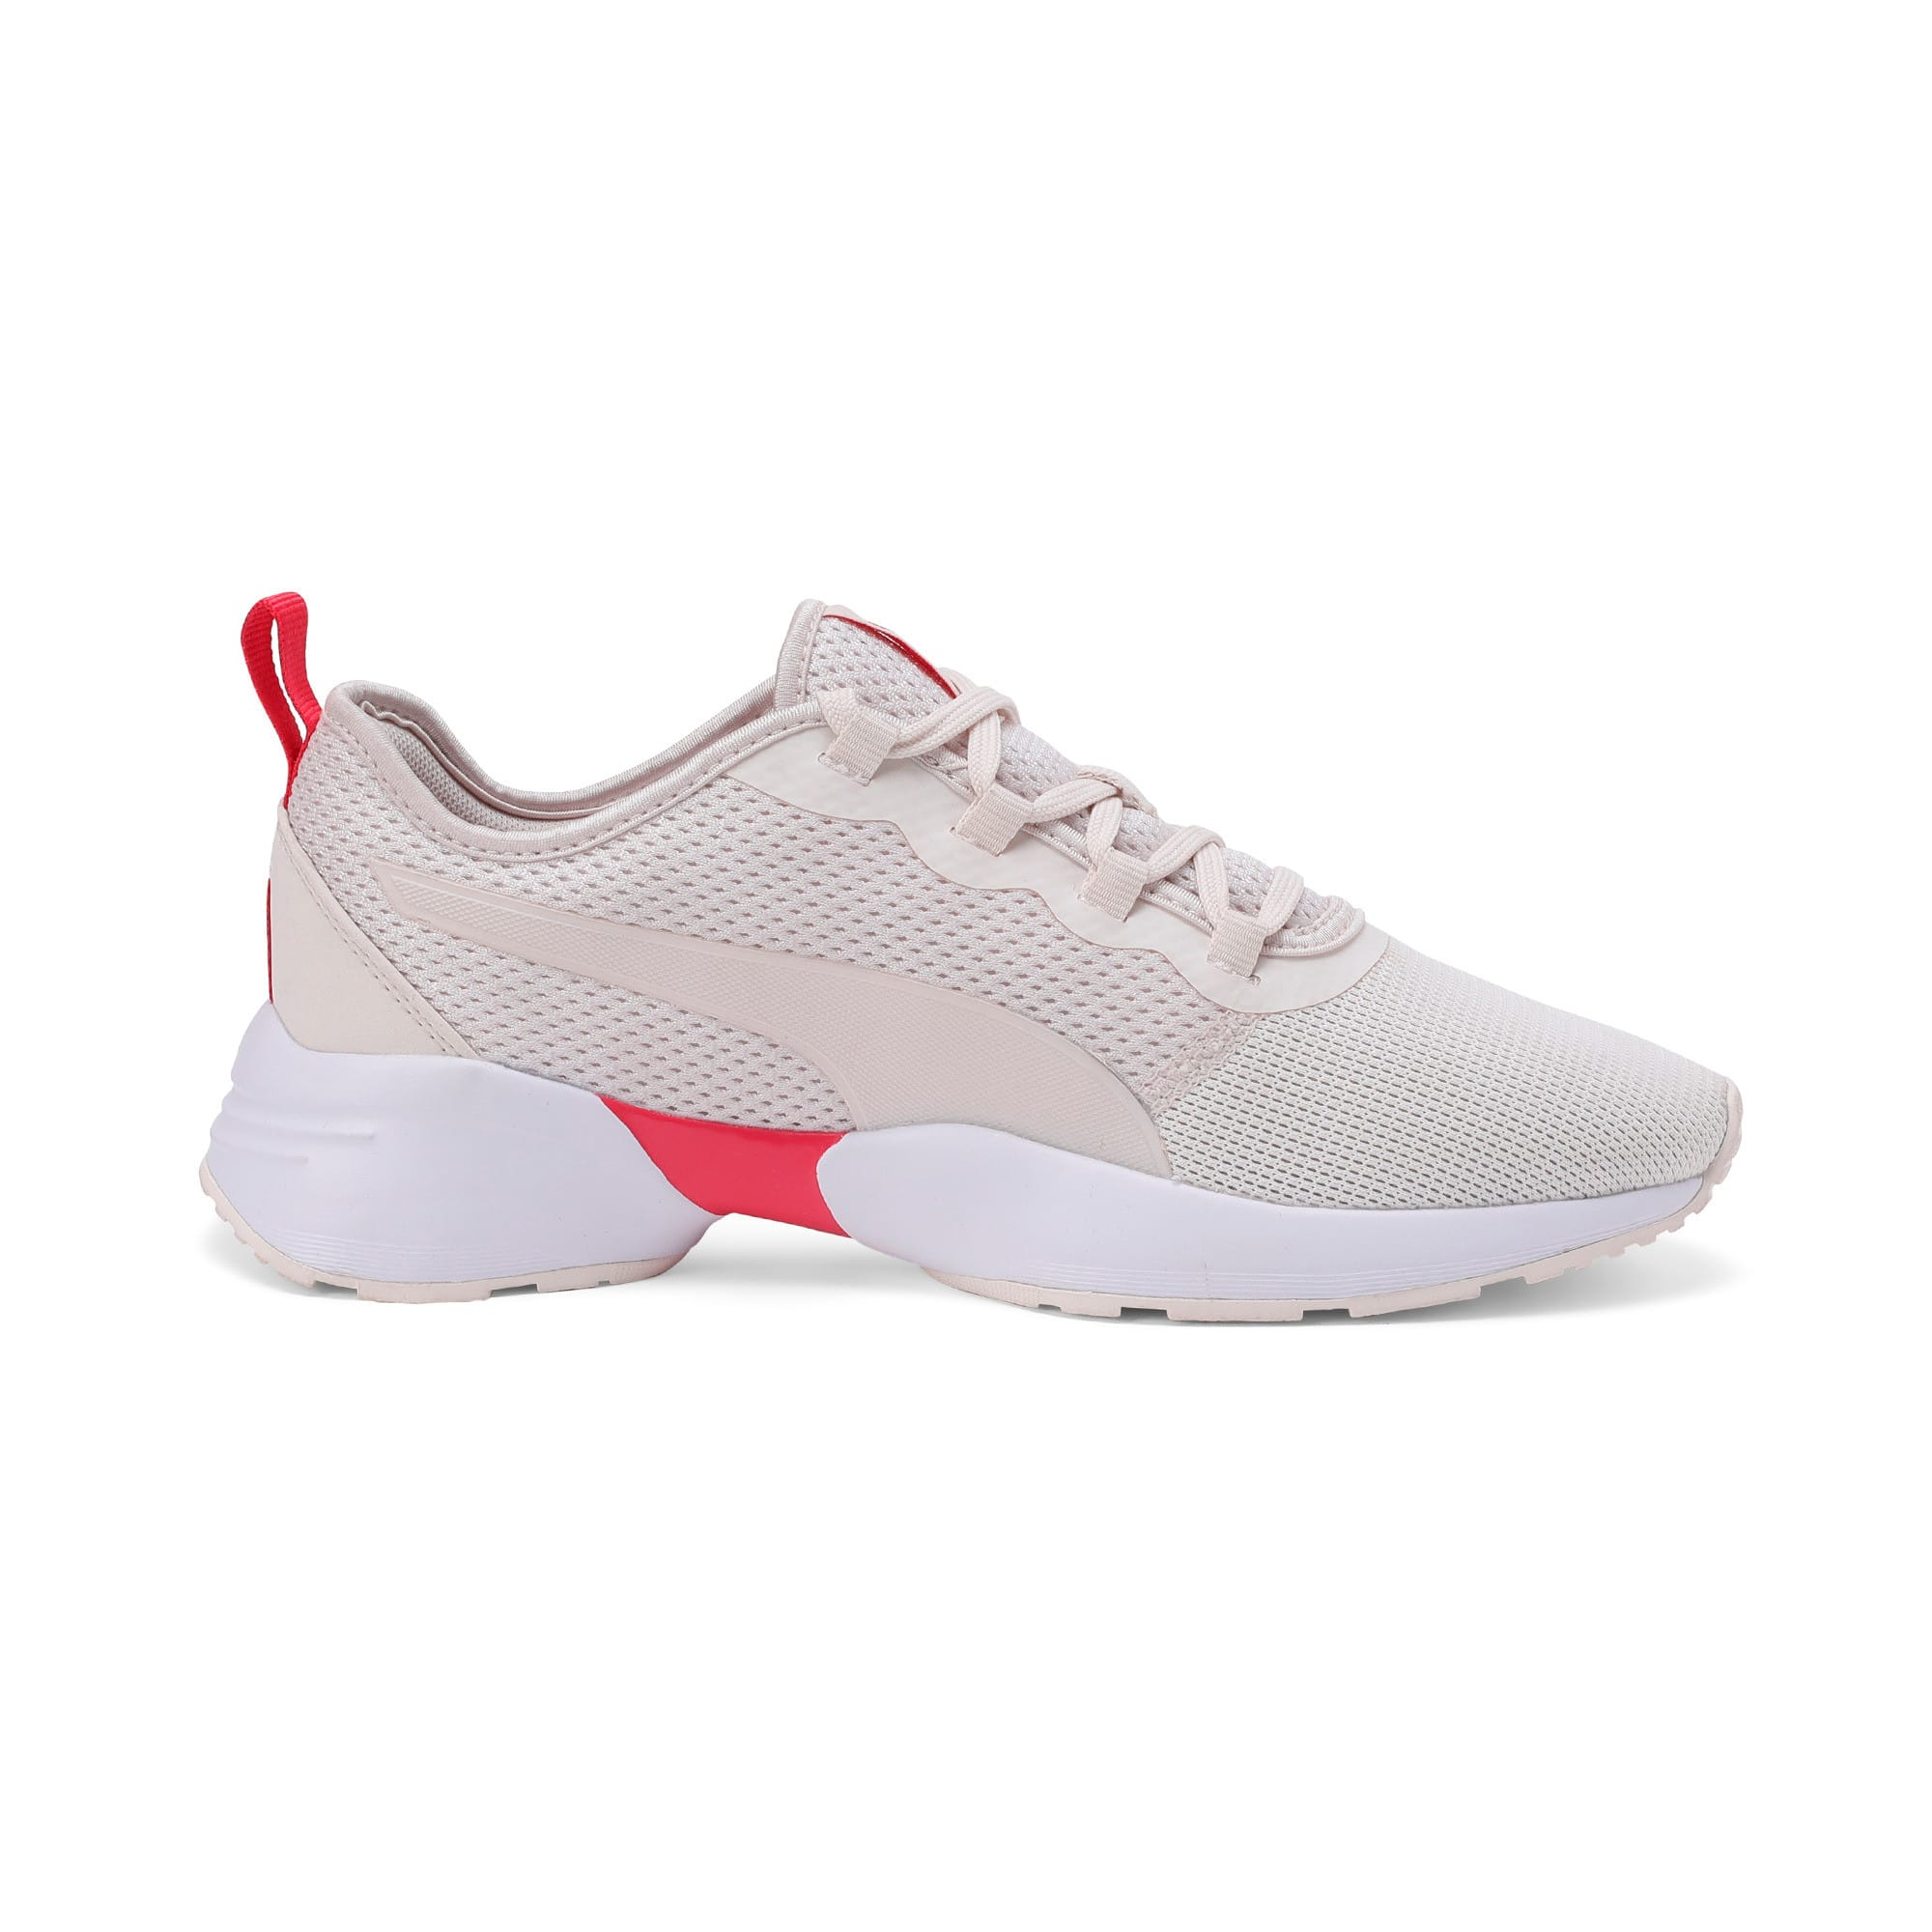 Thumbnail 7 of Sirena Sport Women's Trainers, Pastel Parchment-Nrgy Rose, medium-IND